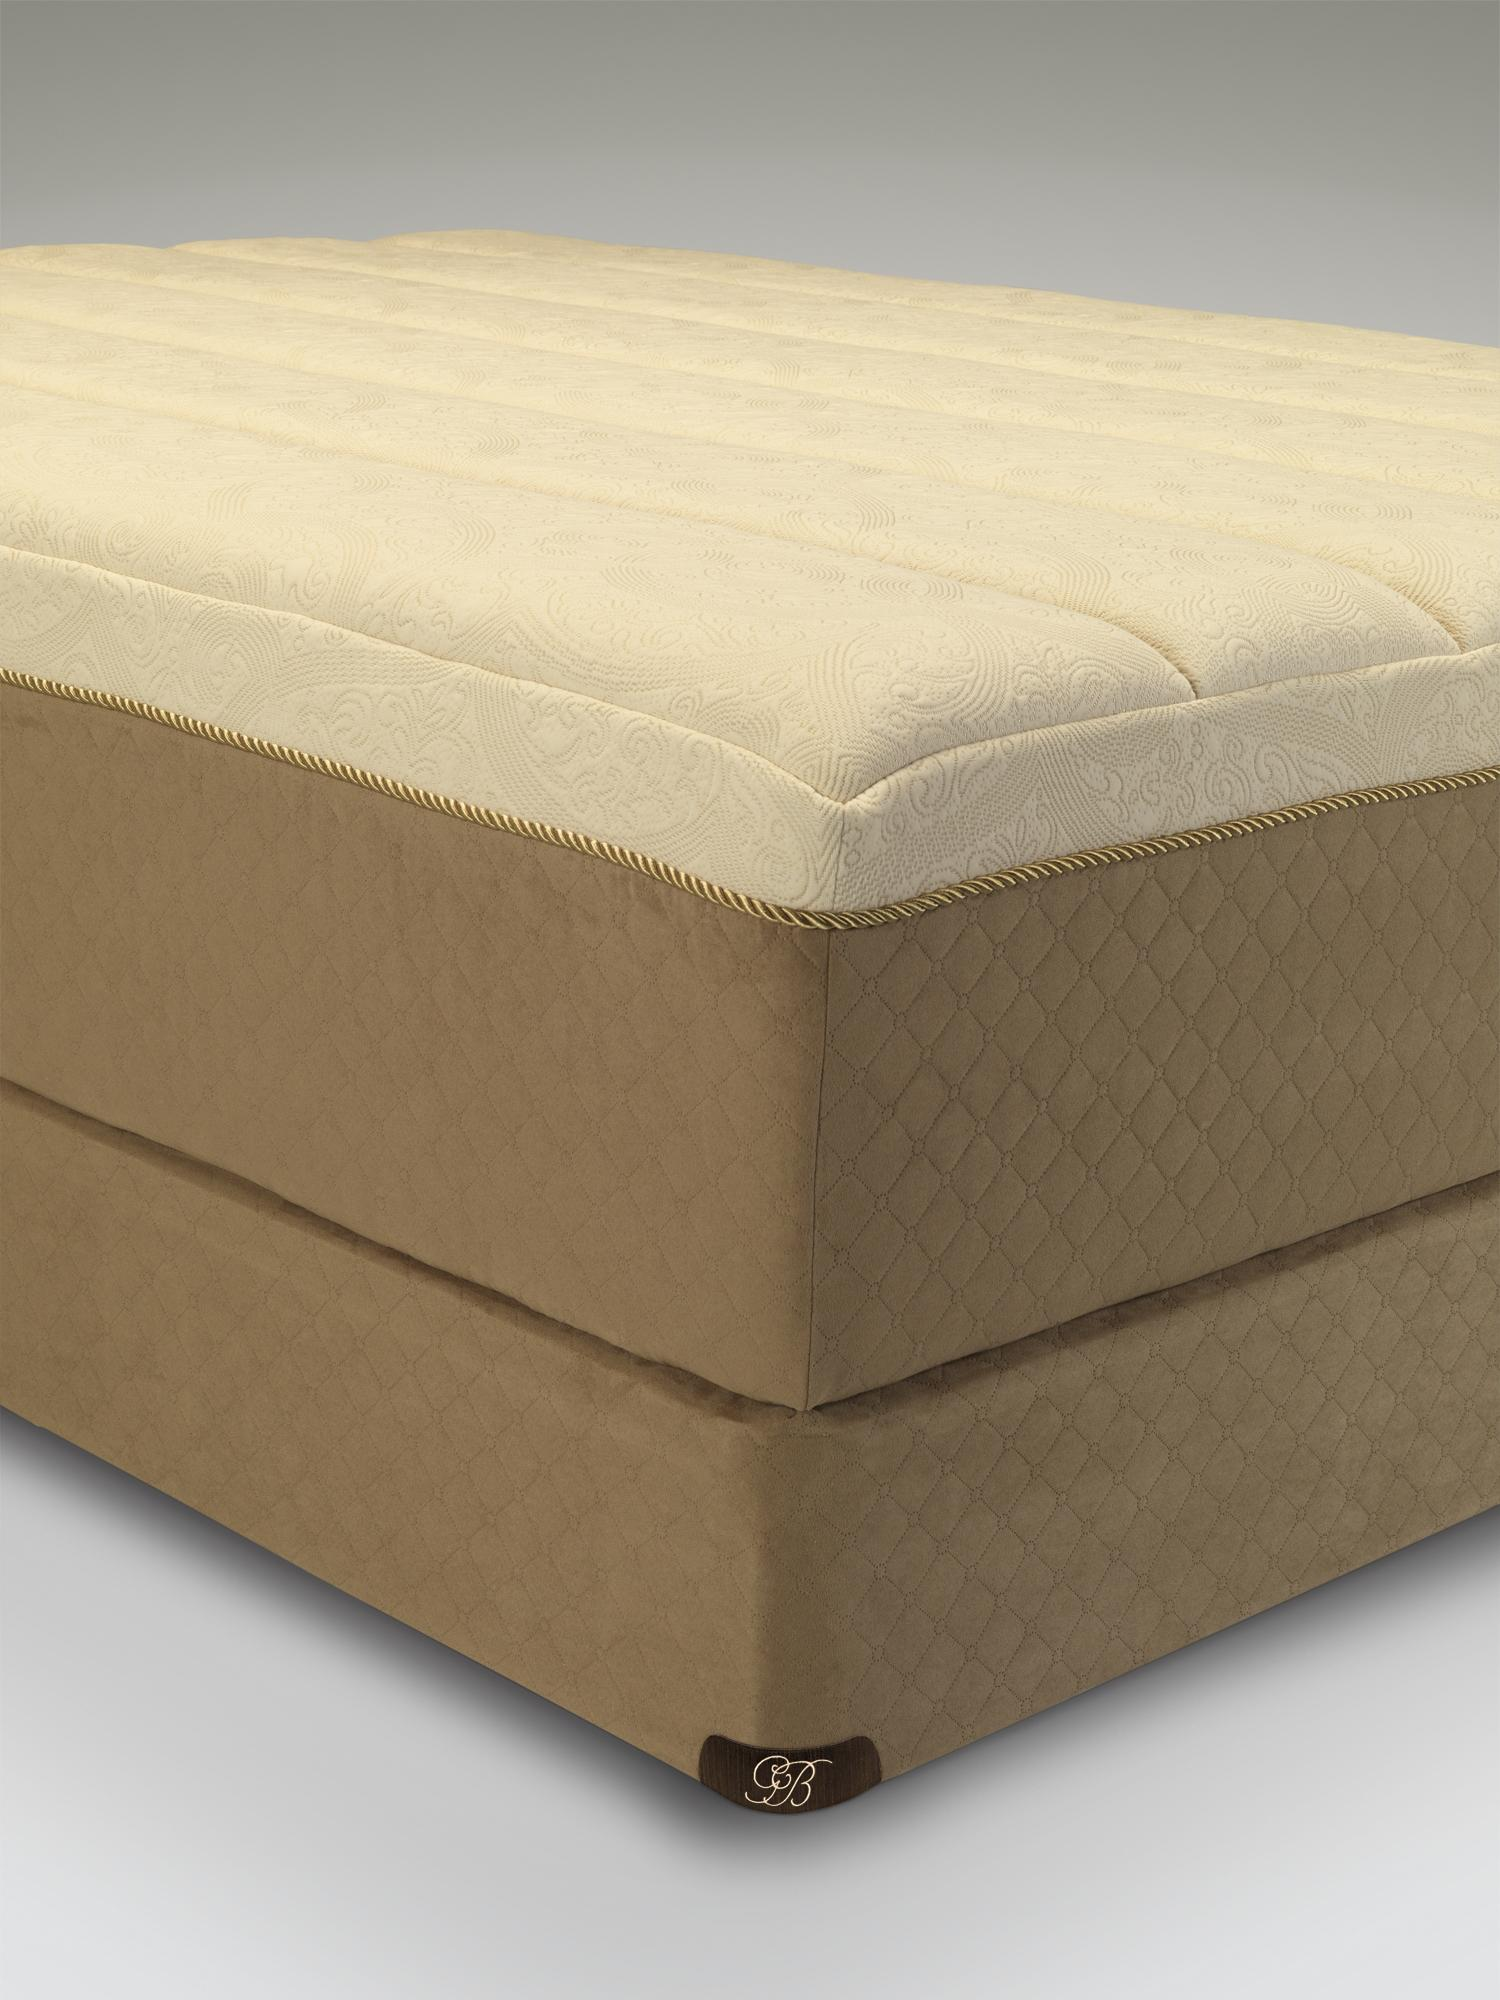 Tempur pedic the grandbed 10185280 2x20515190 california for High mattress box spring